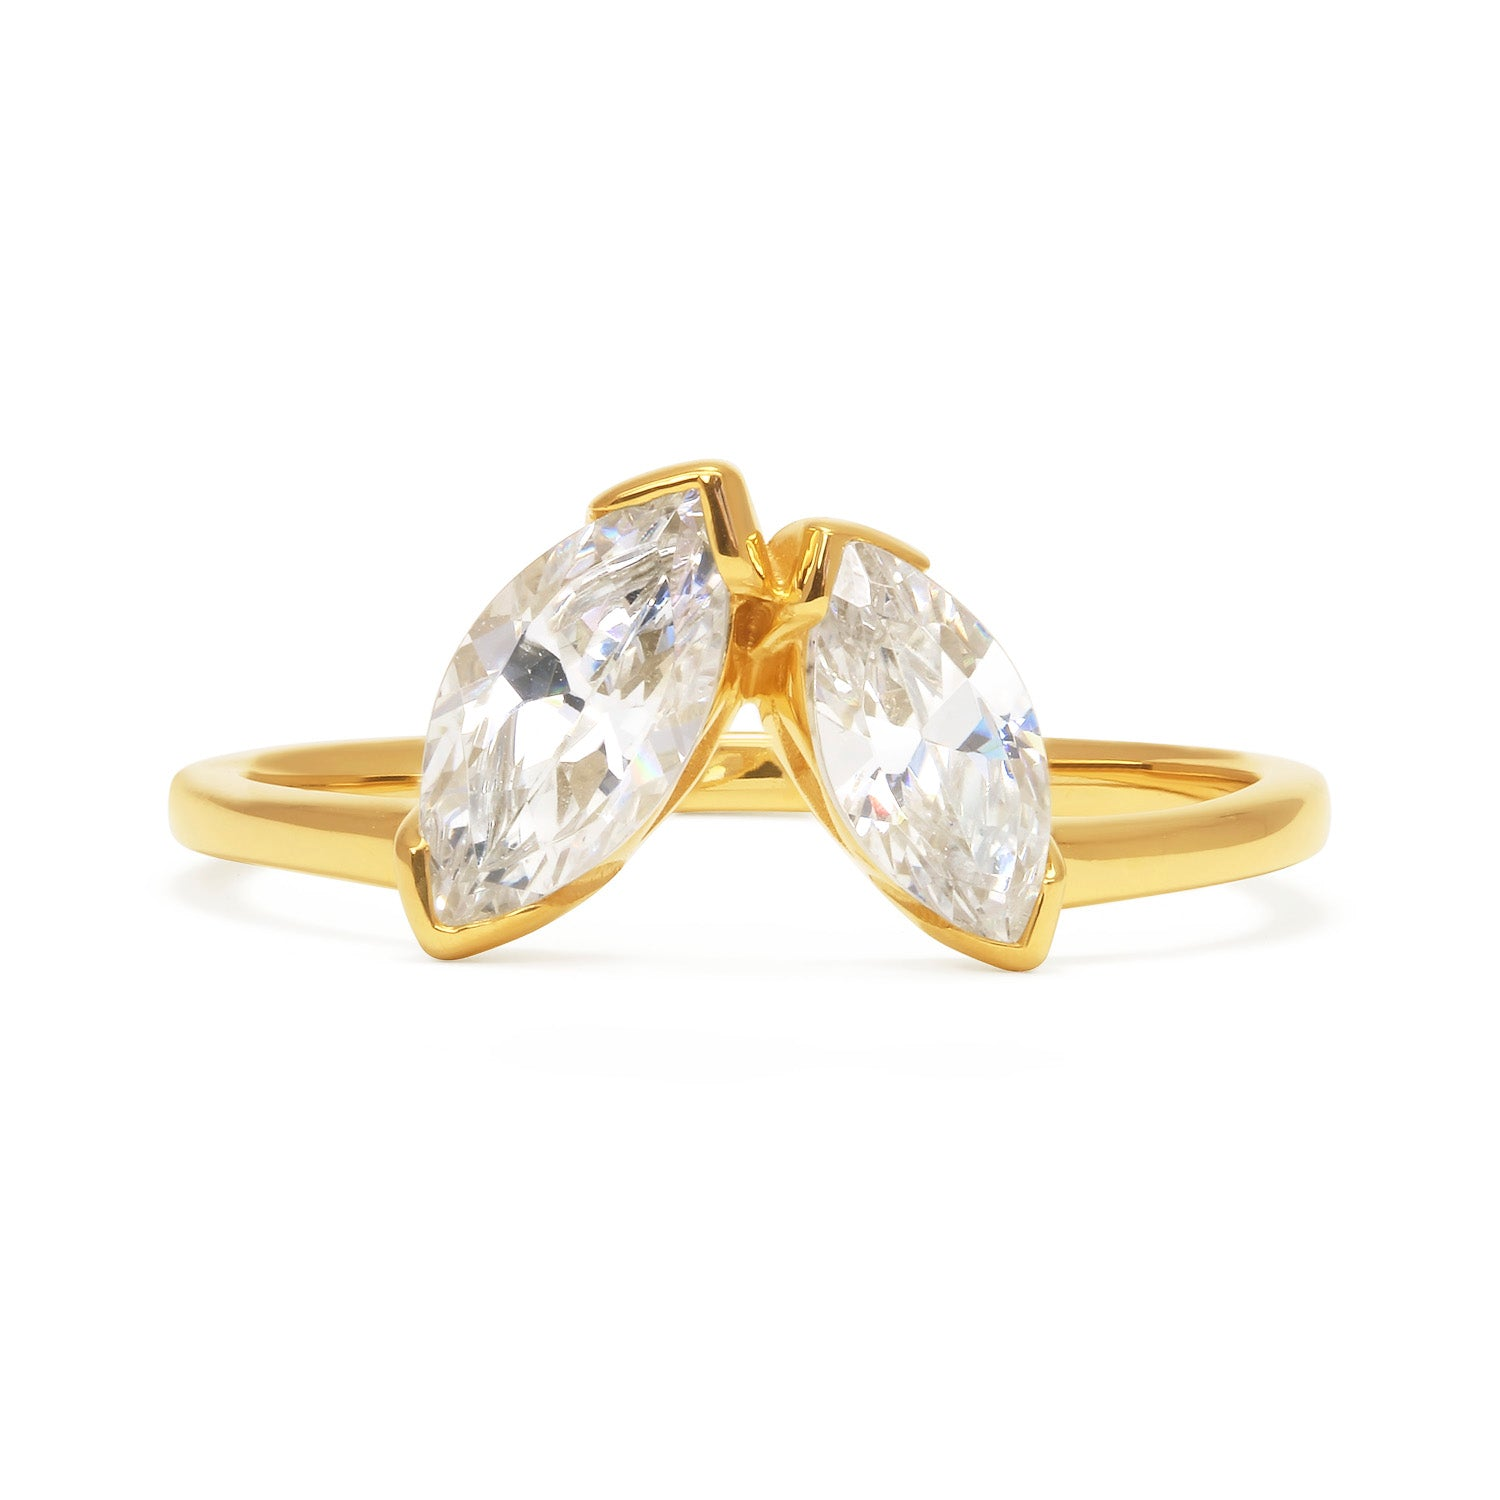 Marquise Diamond Diadem Ethical Ring, 18ct Ethical Gold